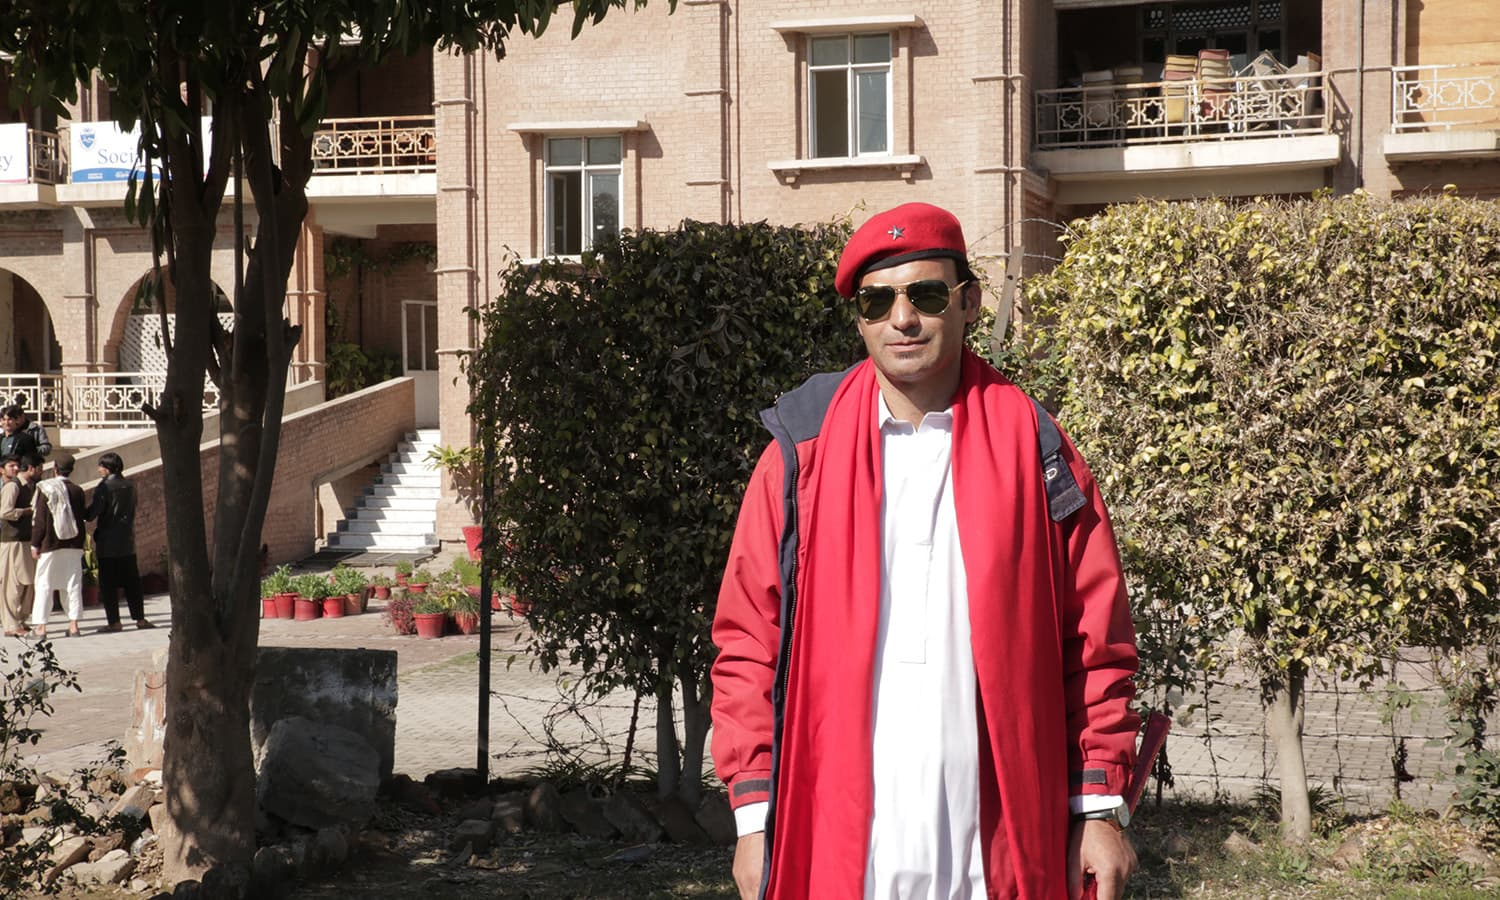 'Royal Shakir,' a member of the left-leaning PSF at the University of Peshawar. — Sara Khan